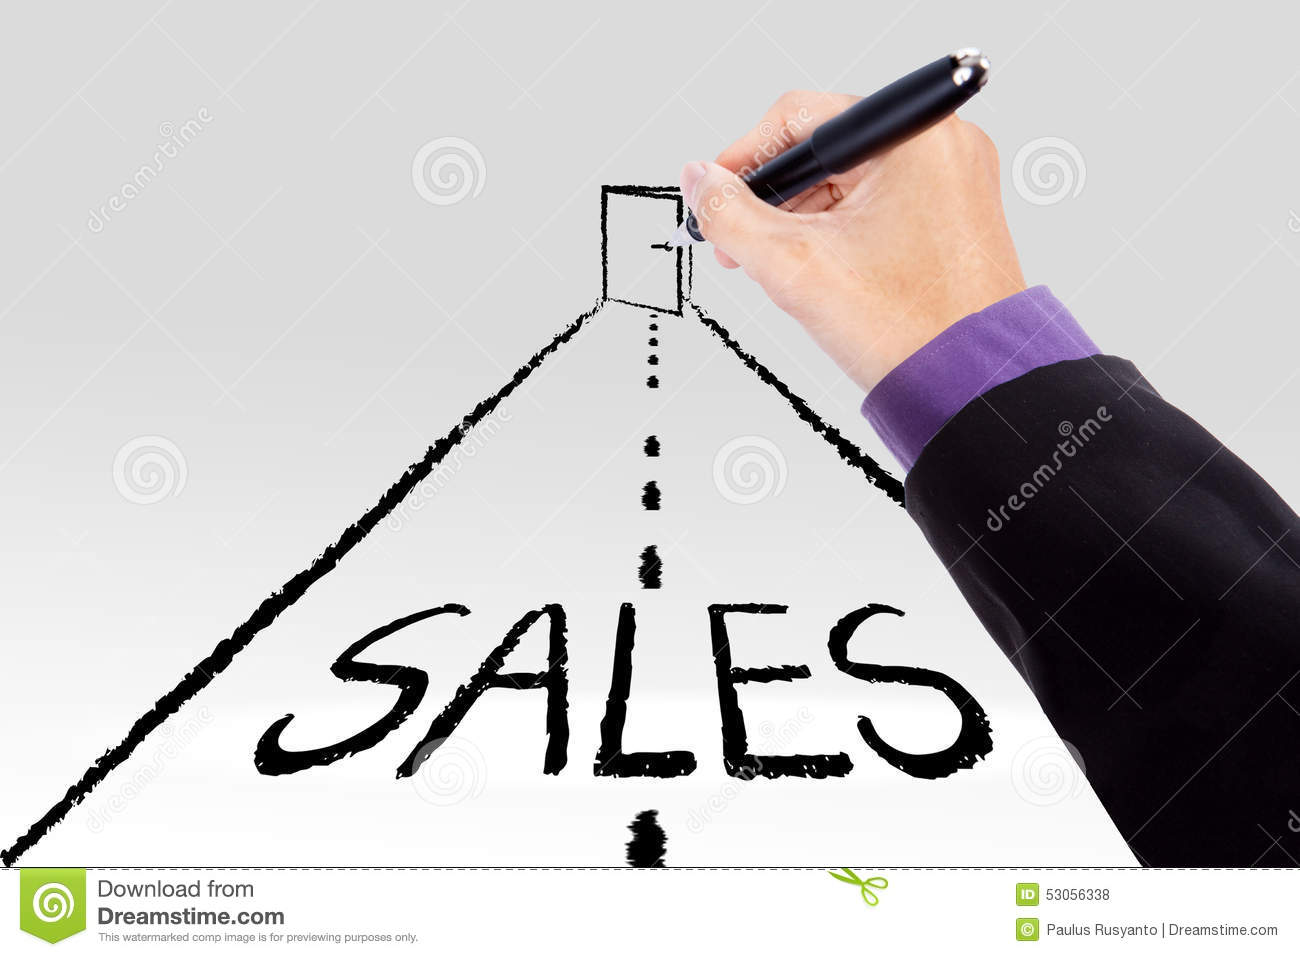 using price discrimination to increase business sales essay How to use discount pricing strategies to make more sales  your pricing is a strategy that can drive more sales volume to your business, bring in new customers.